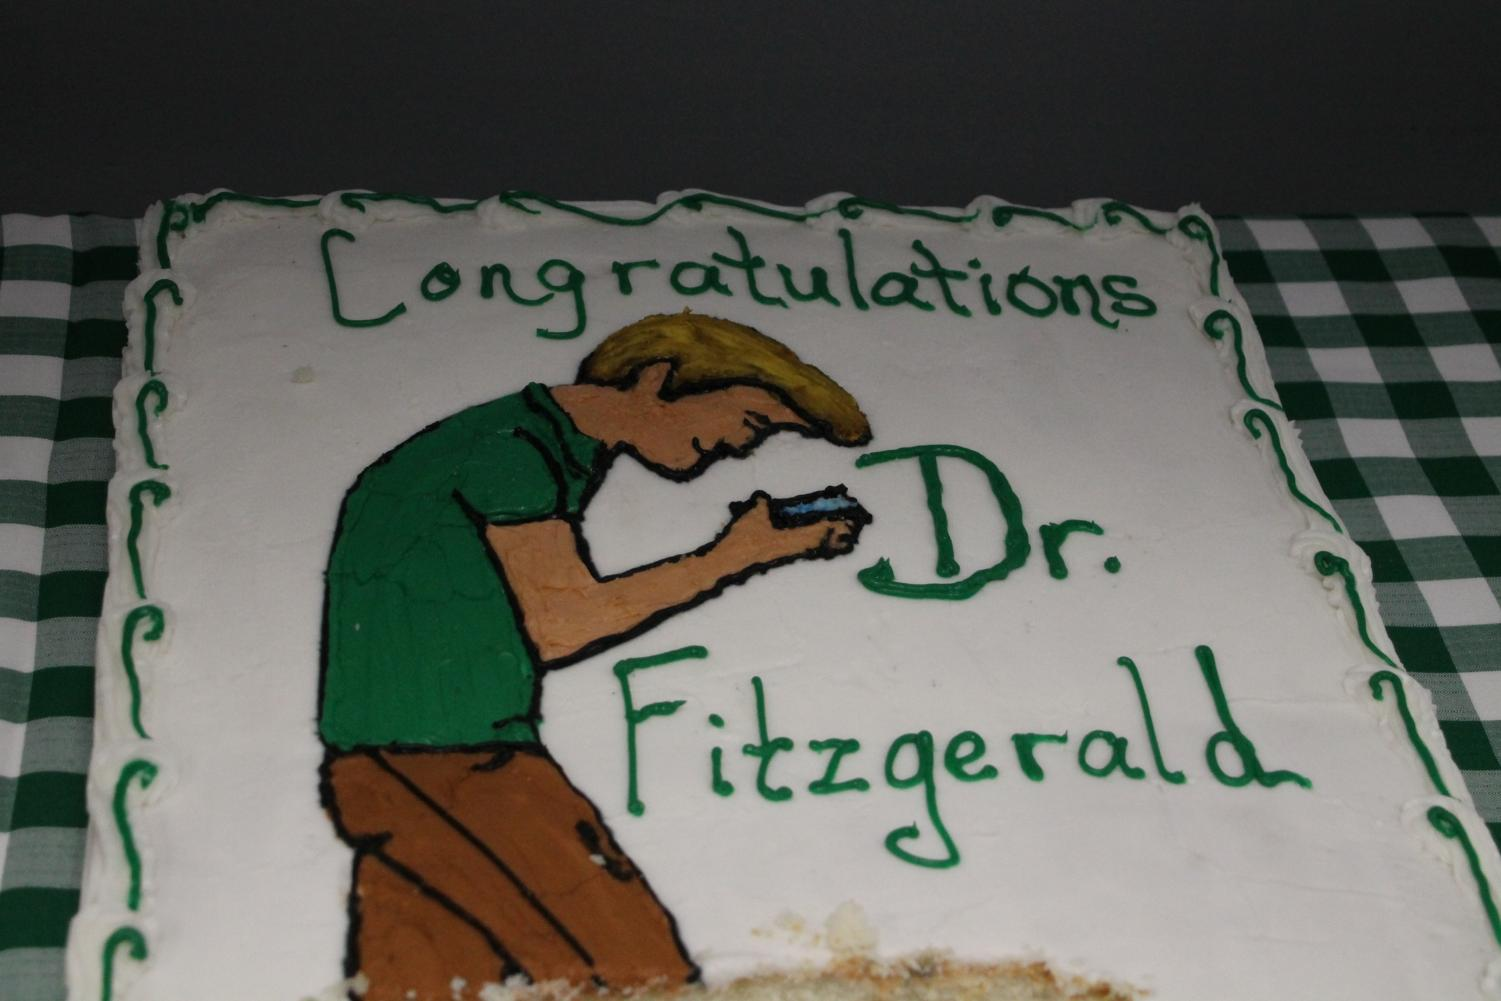 Dr.+Fitzgerald%27s+humorous+cake.